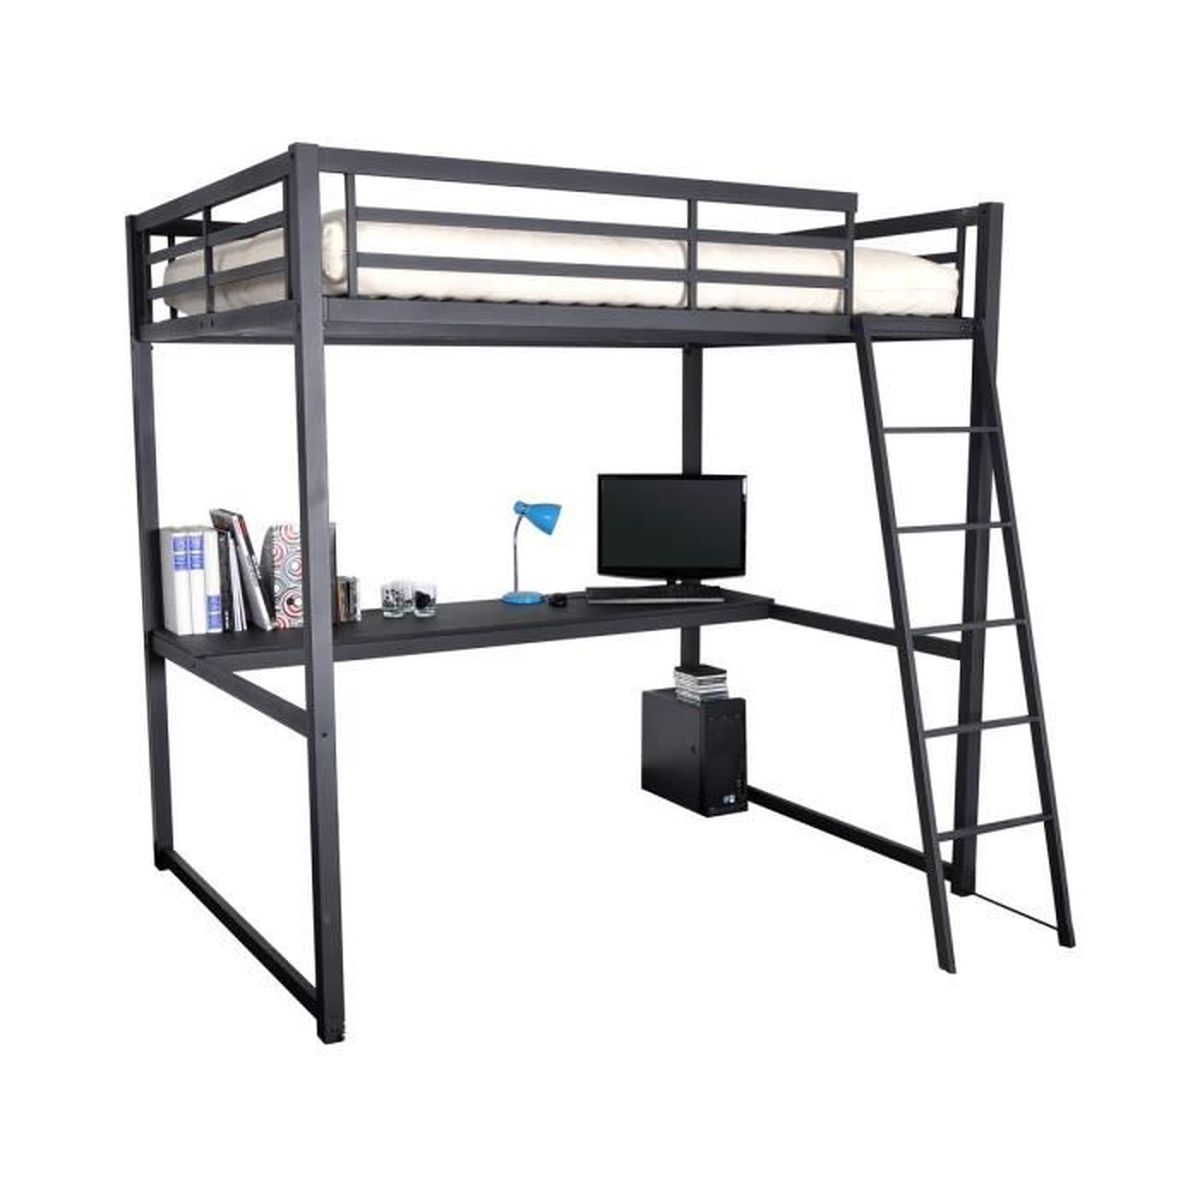 lit mezzanine 140x190 achat vente lit mezzanine. Black Bedroom Furniture Sets. Home Design Ideas